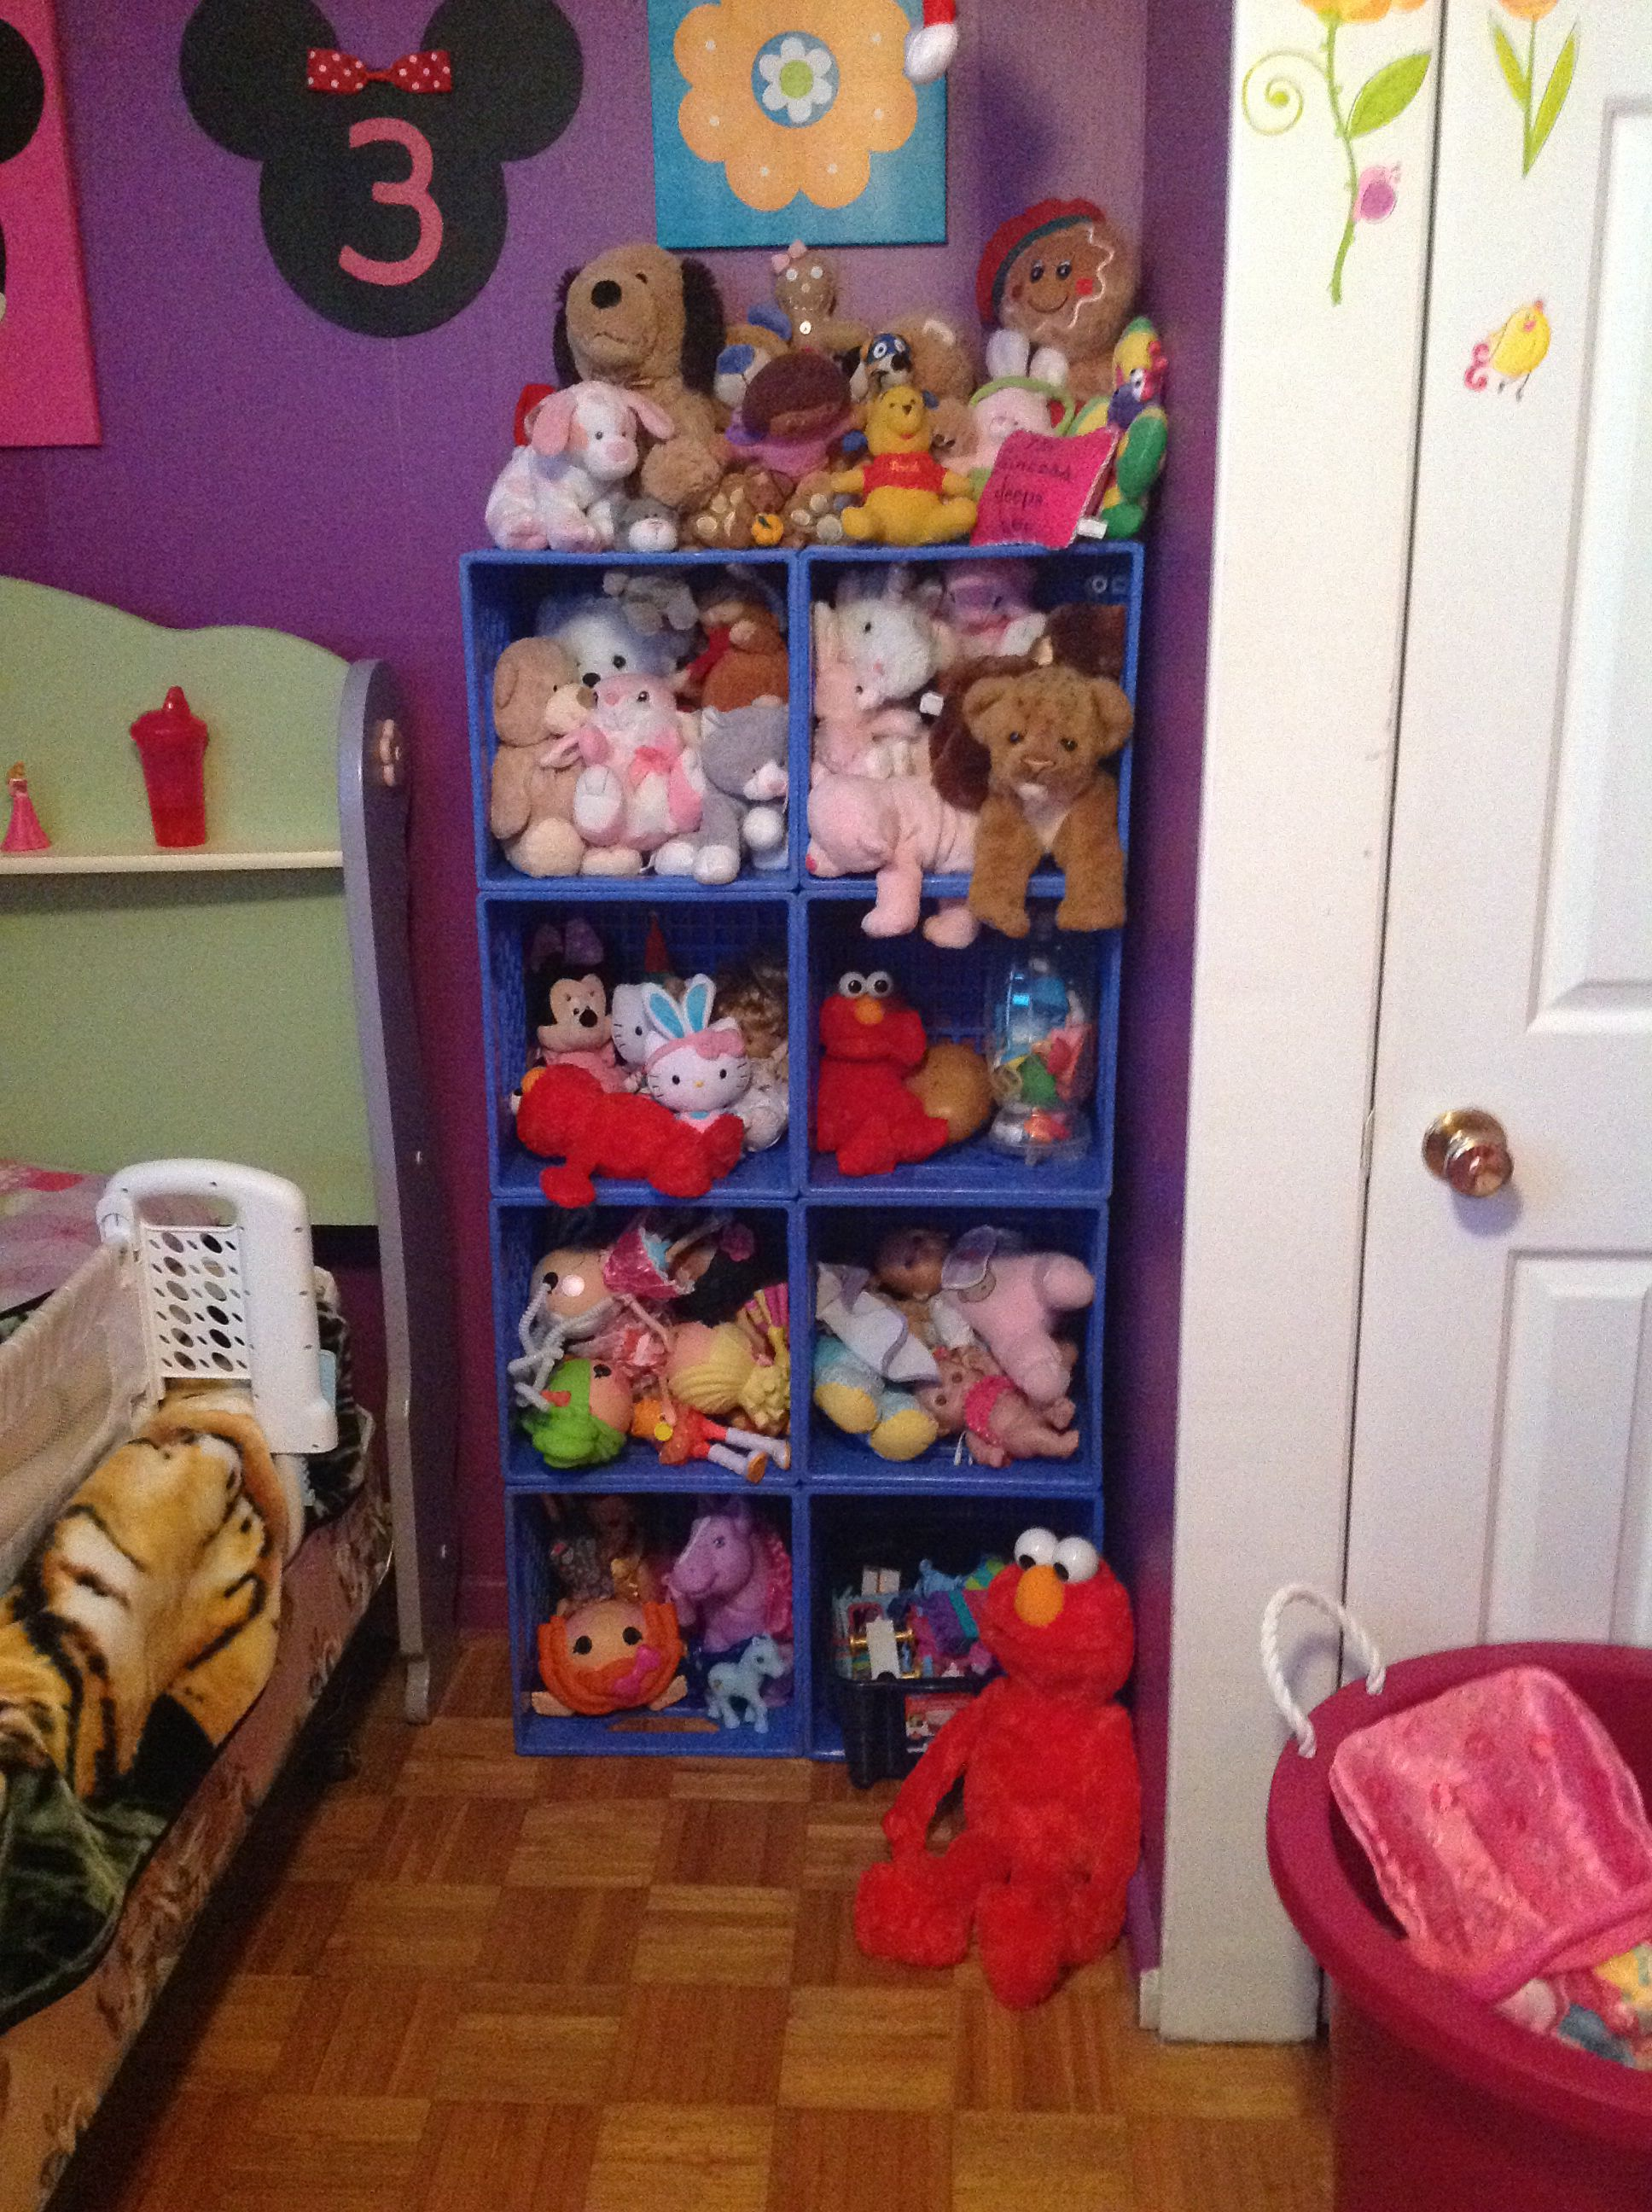 My Daughters Box Room Right Side: Milk Crate Toy Storage I Just Finished In Our Daughters